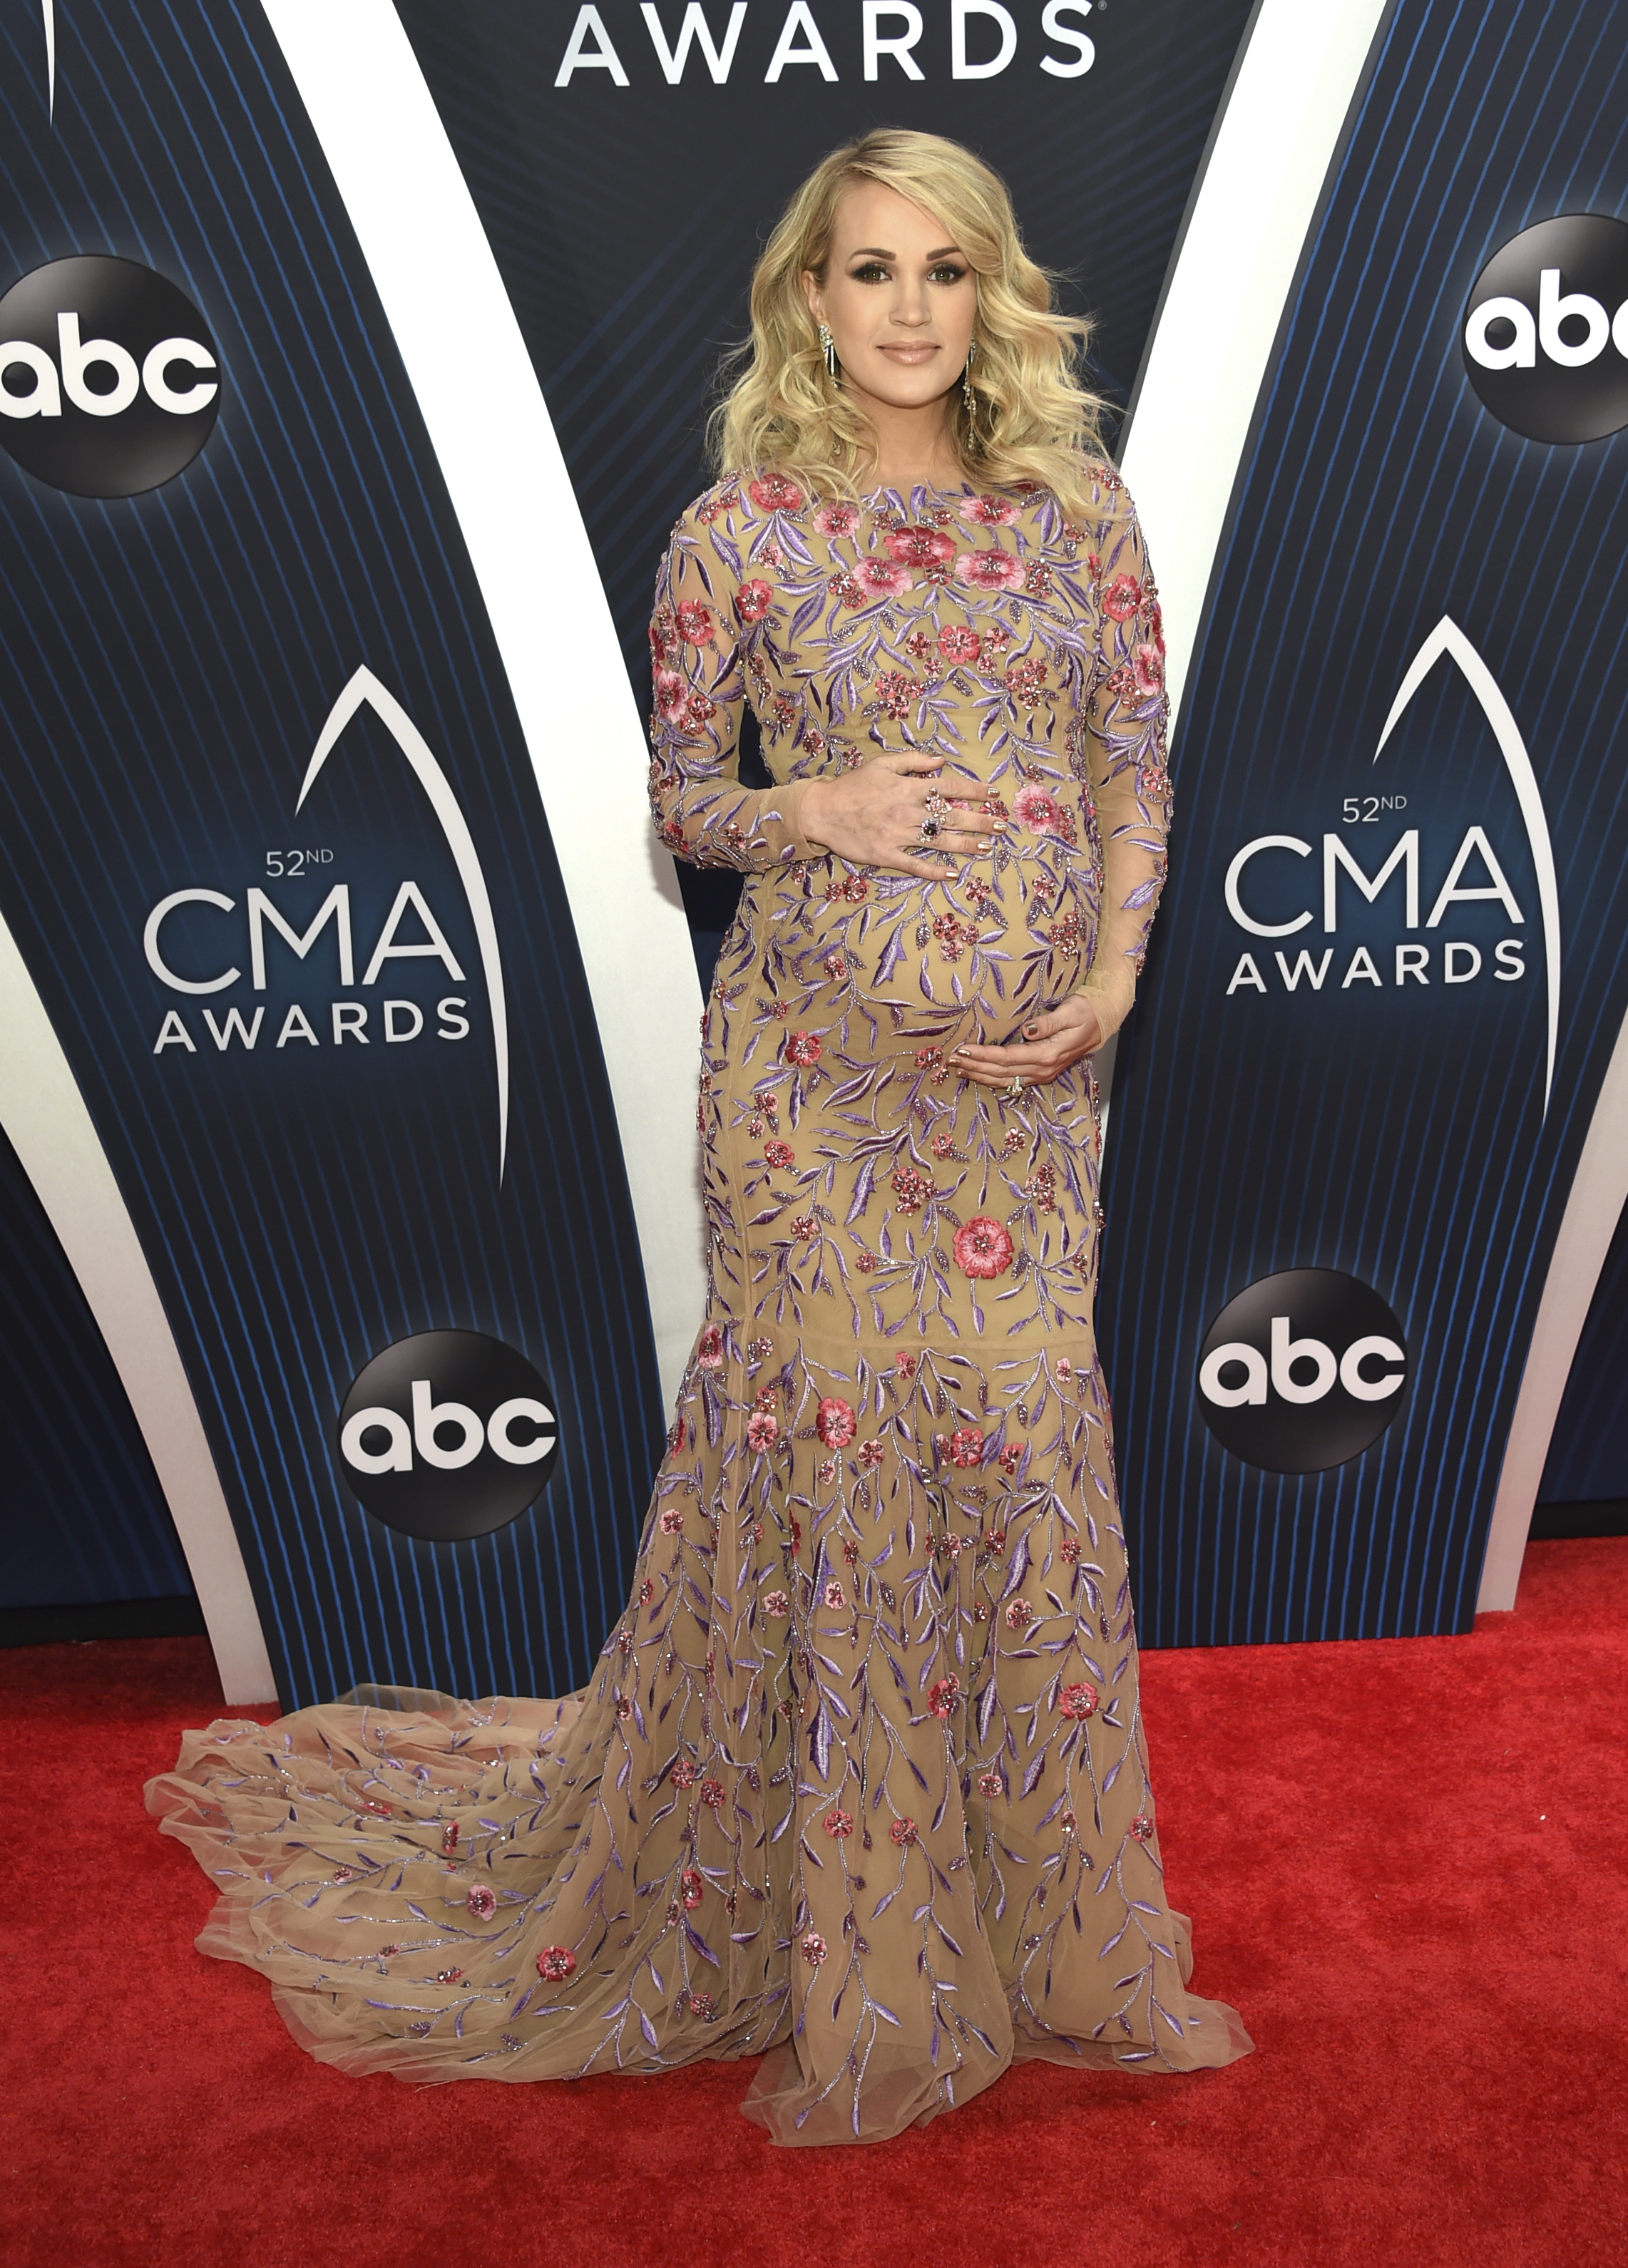 "<div class=""meta image-caption""><div class=""origin-logo origin-image ap""><span>AP</span></div><span class=""caption-text"">Carrie Underwood arrives at the 52nd annual CMA Awards at Bridgestone Arena on Wednesday, Nov. 14, 2018, in Nashville, Tenn. (Photo by Evan Agostini/Invision/AP) (Evan Agostini/Invision/AP)</span></div>"